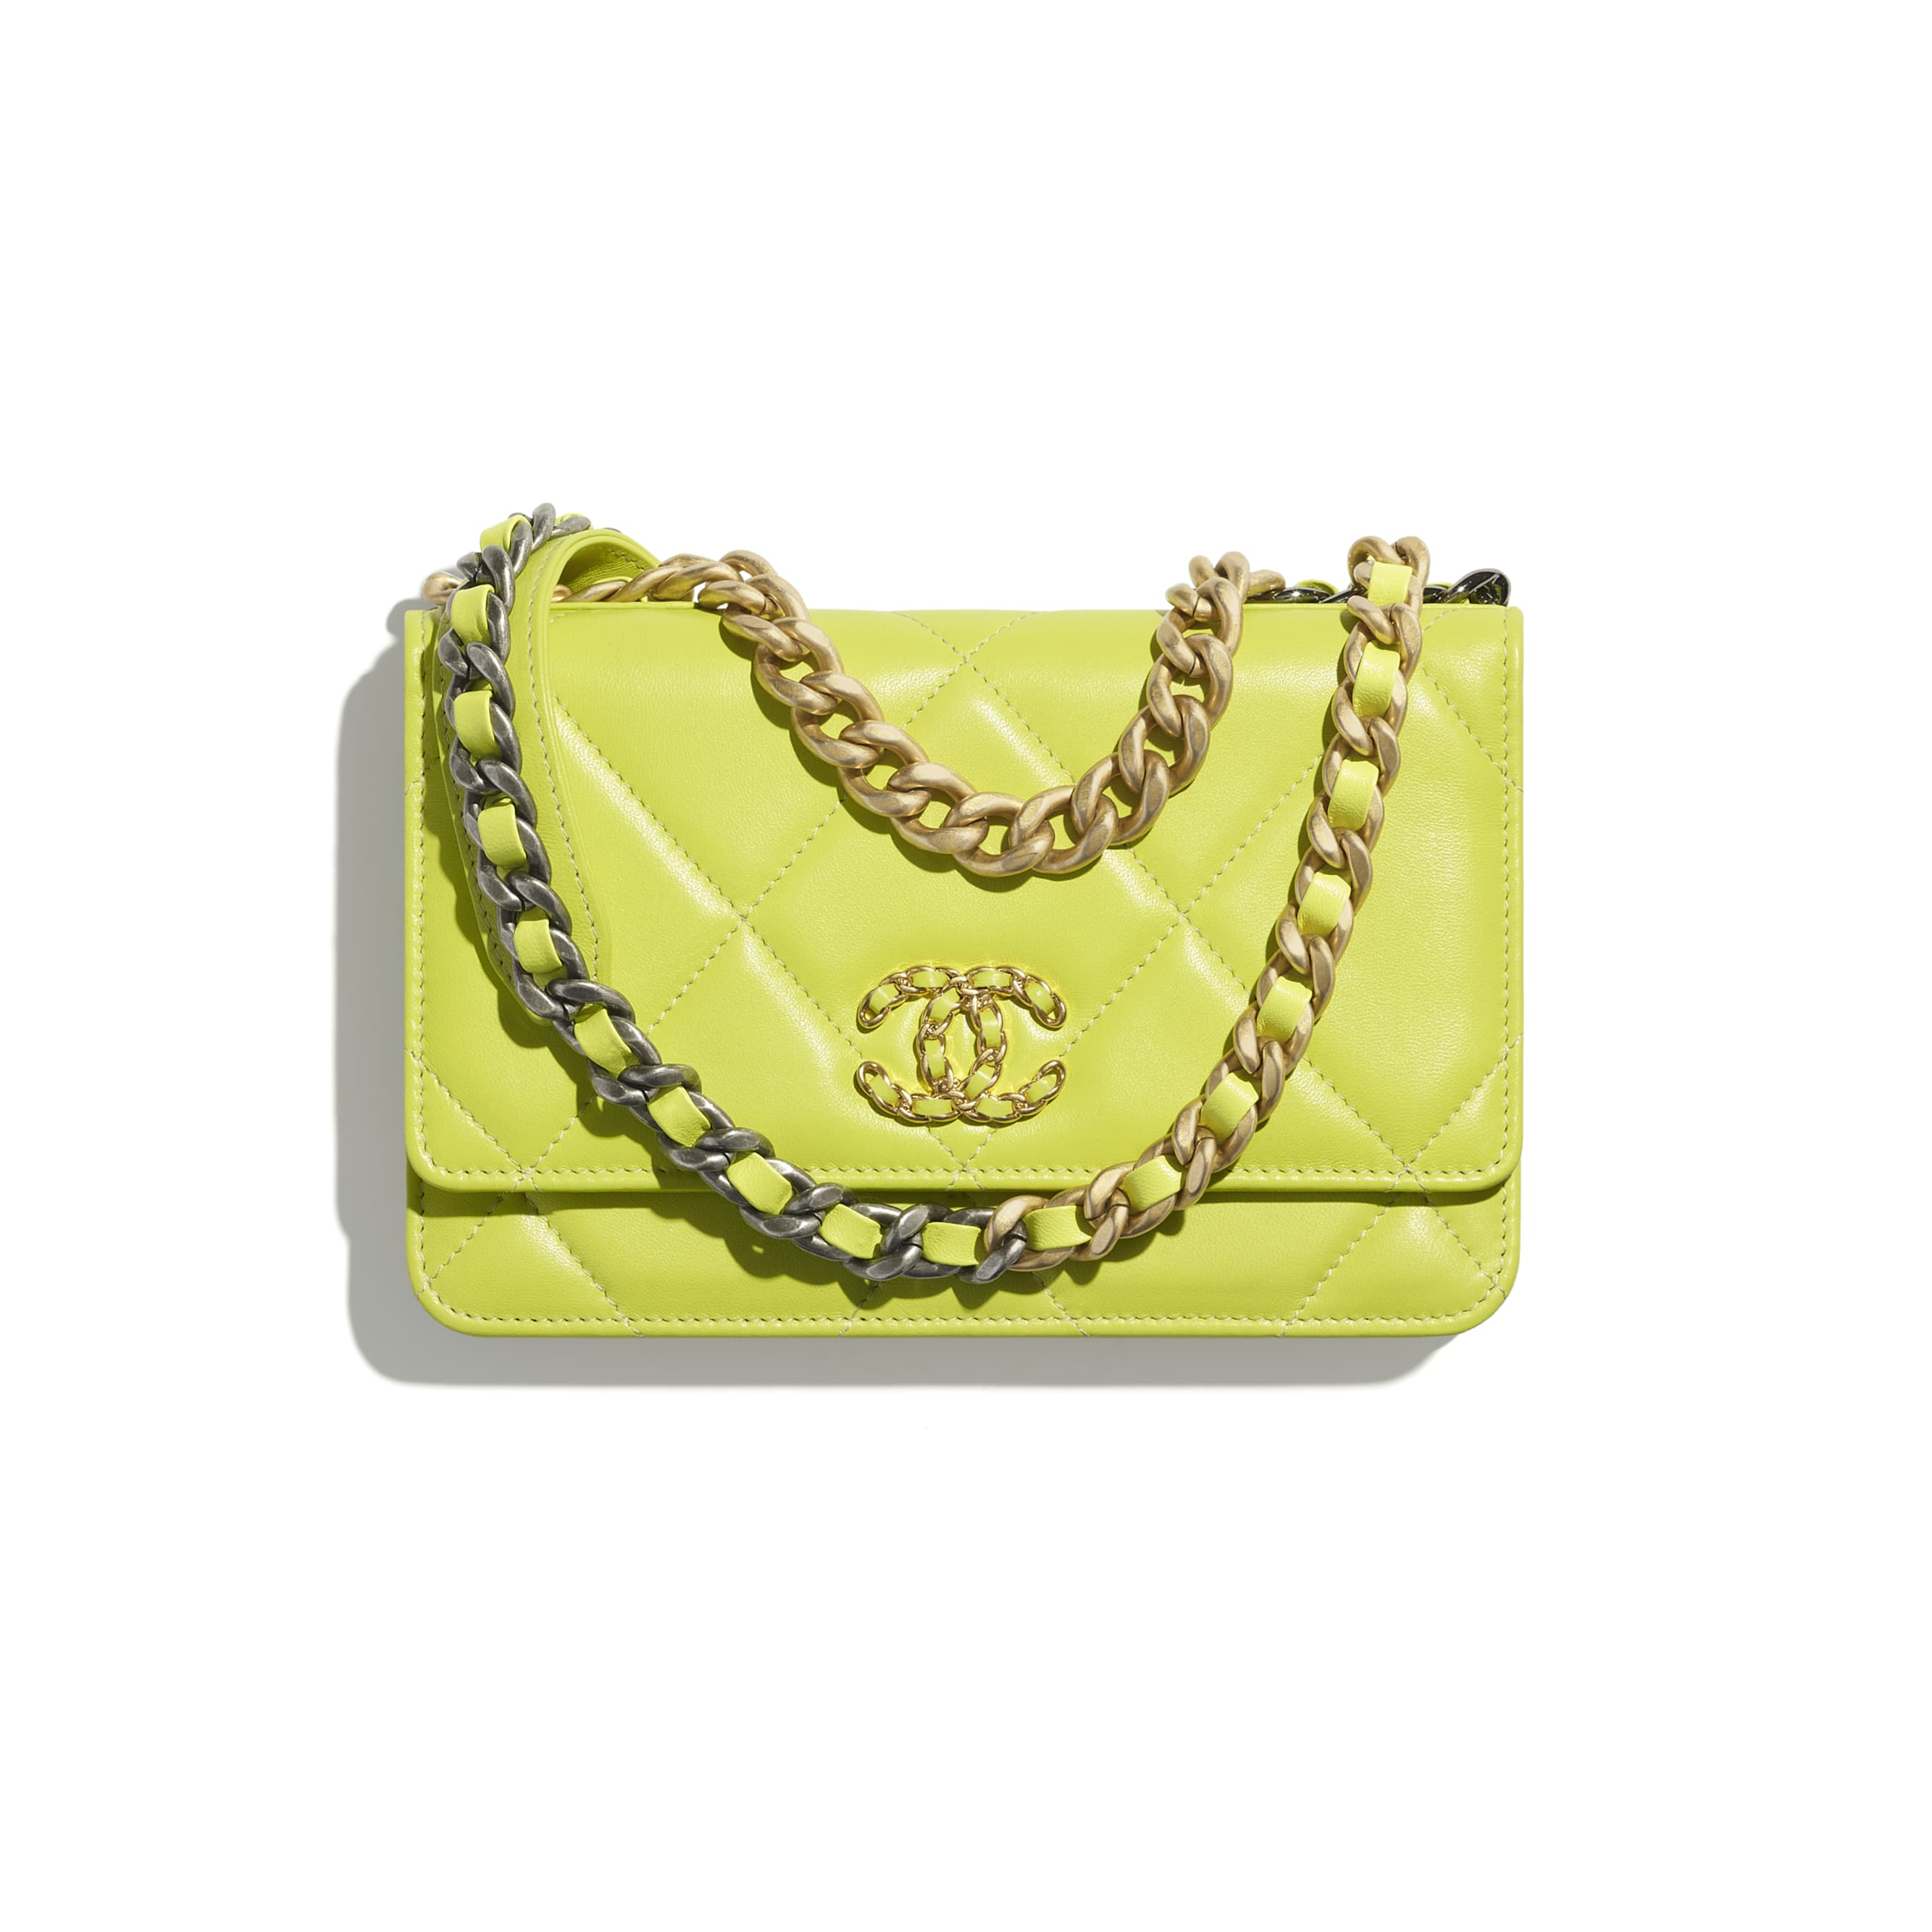 CHANEL 19 Wallet on Chain - Neon Yellow - Shiny Lambskin, Gold-Tone, Silver-Tone & Ruthenium-Finish Metal - CHANEL - Default view - see standard sized version